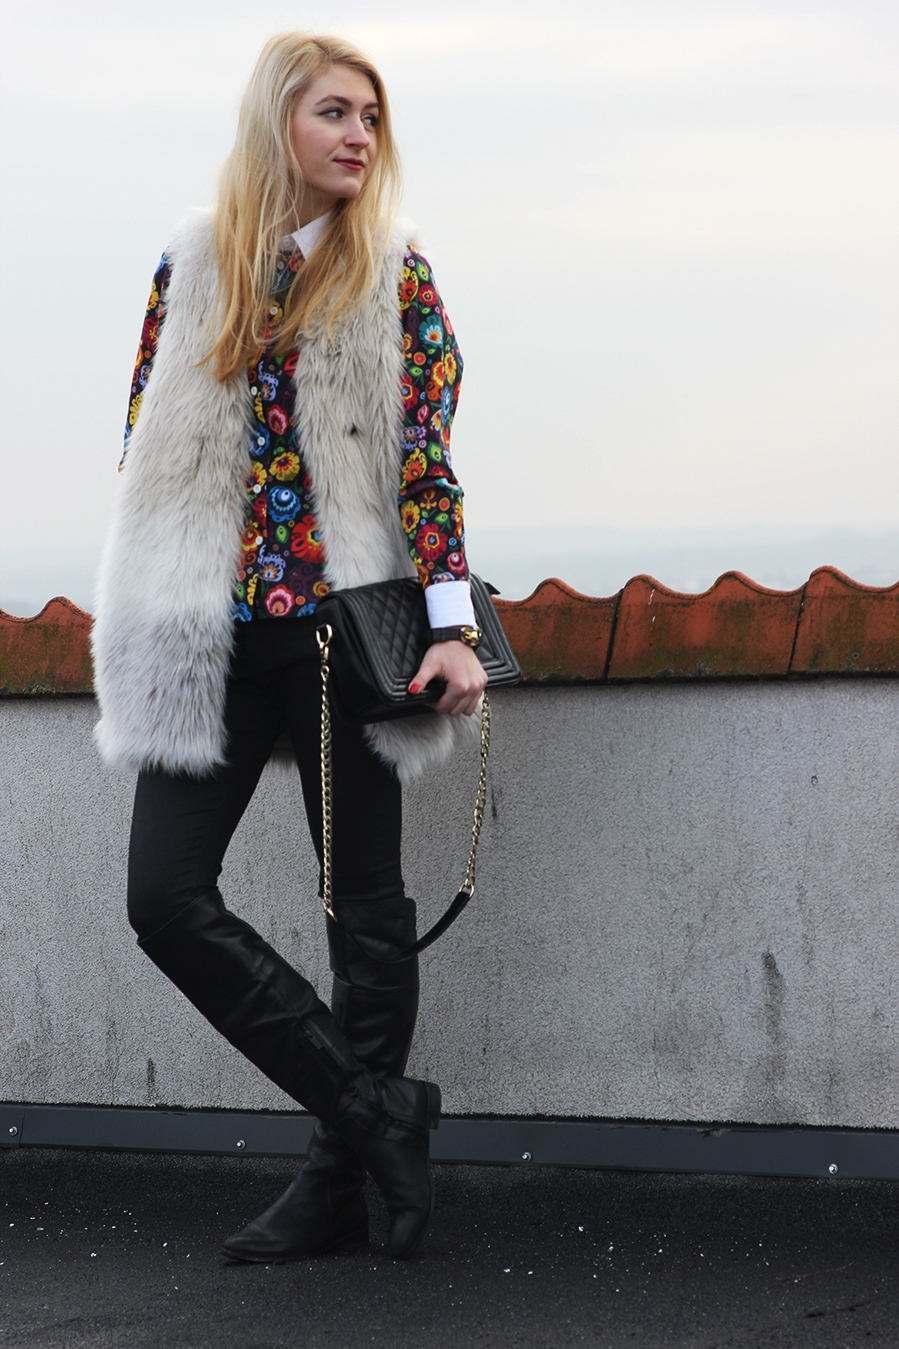 SimplyTheBest Blog written and created by Ewa Sularz  OOTD: Folk shirt and watch Mustasz shirt Swatch watch H&M fur Zara trousers Humanic high boots Nucelle bag